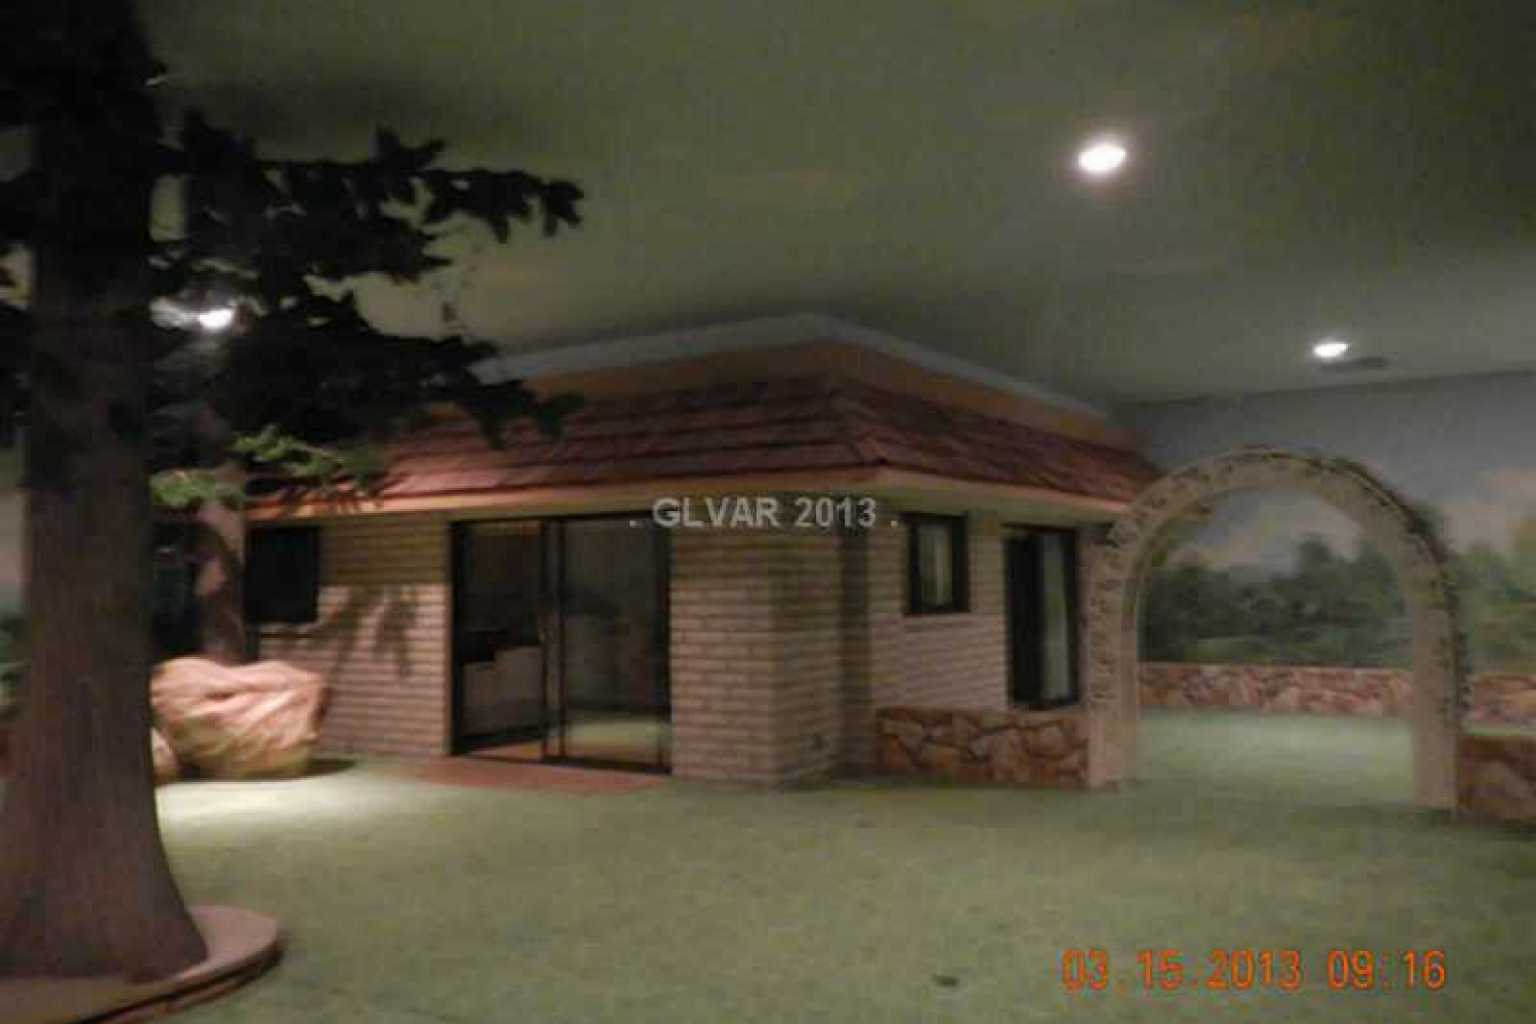 Subterranean House Underground 1970s Home Built 26 Feet Beneath Las Vegas Makes A